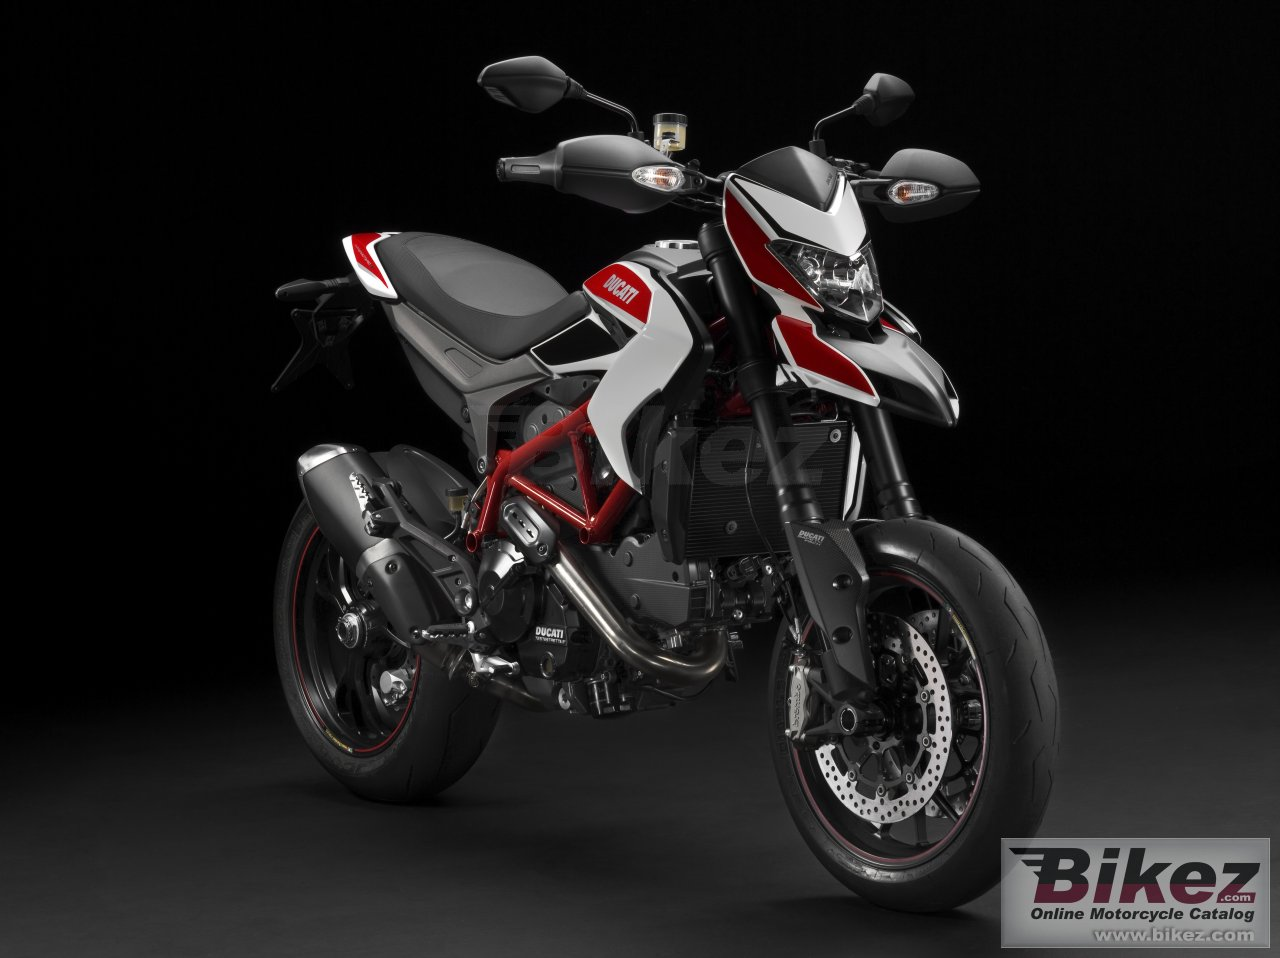 Big Ducati hypermotard sp picture and wallpaper from Bikez.com